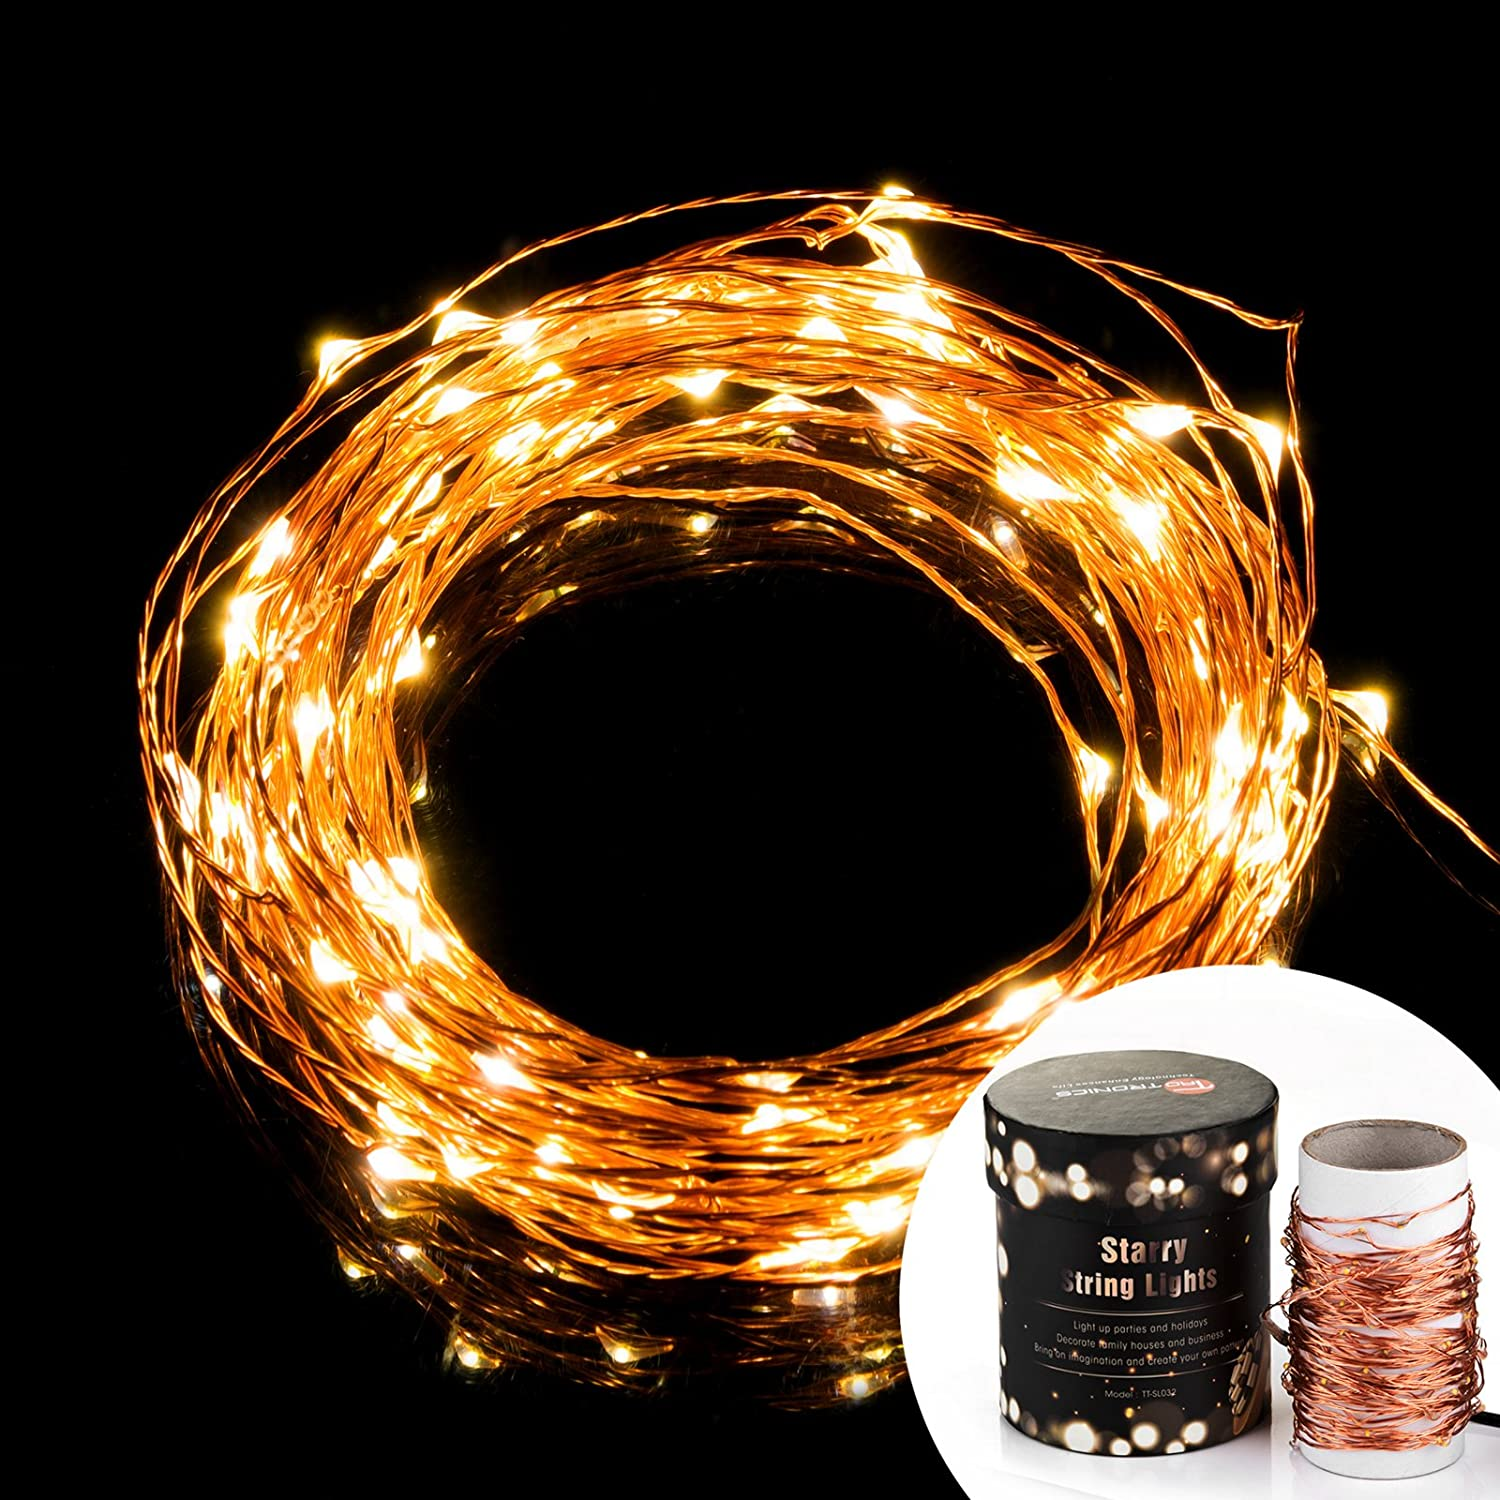 Starry String Lights Target : TaoTronics Indoor Led Starry String Light 100 Leds 33 Feet Amazon * HOT * Sales Pick Coupon ...